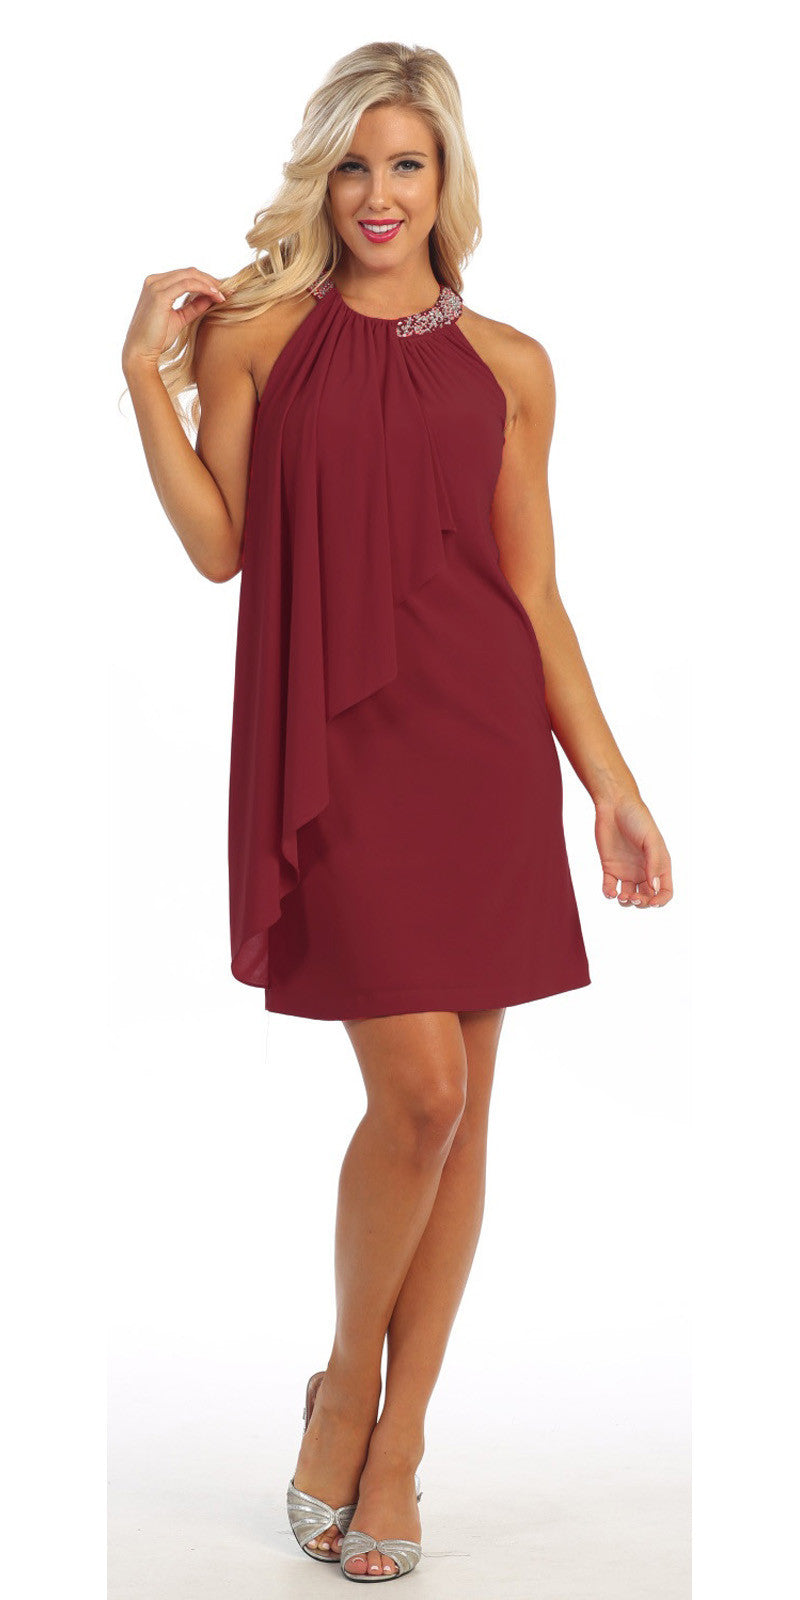 Halter Cocktail Dress Burgundy Short Rhinestone Neckline Draped